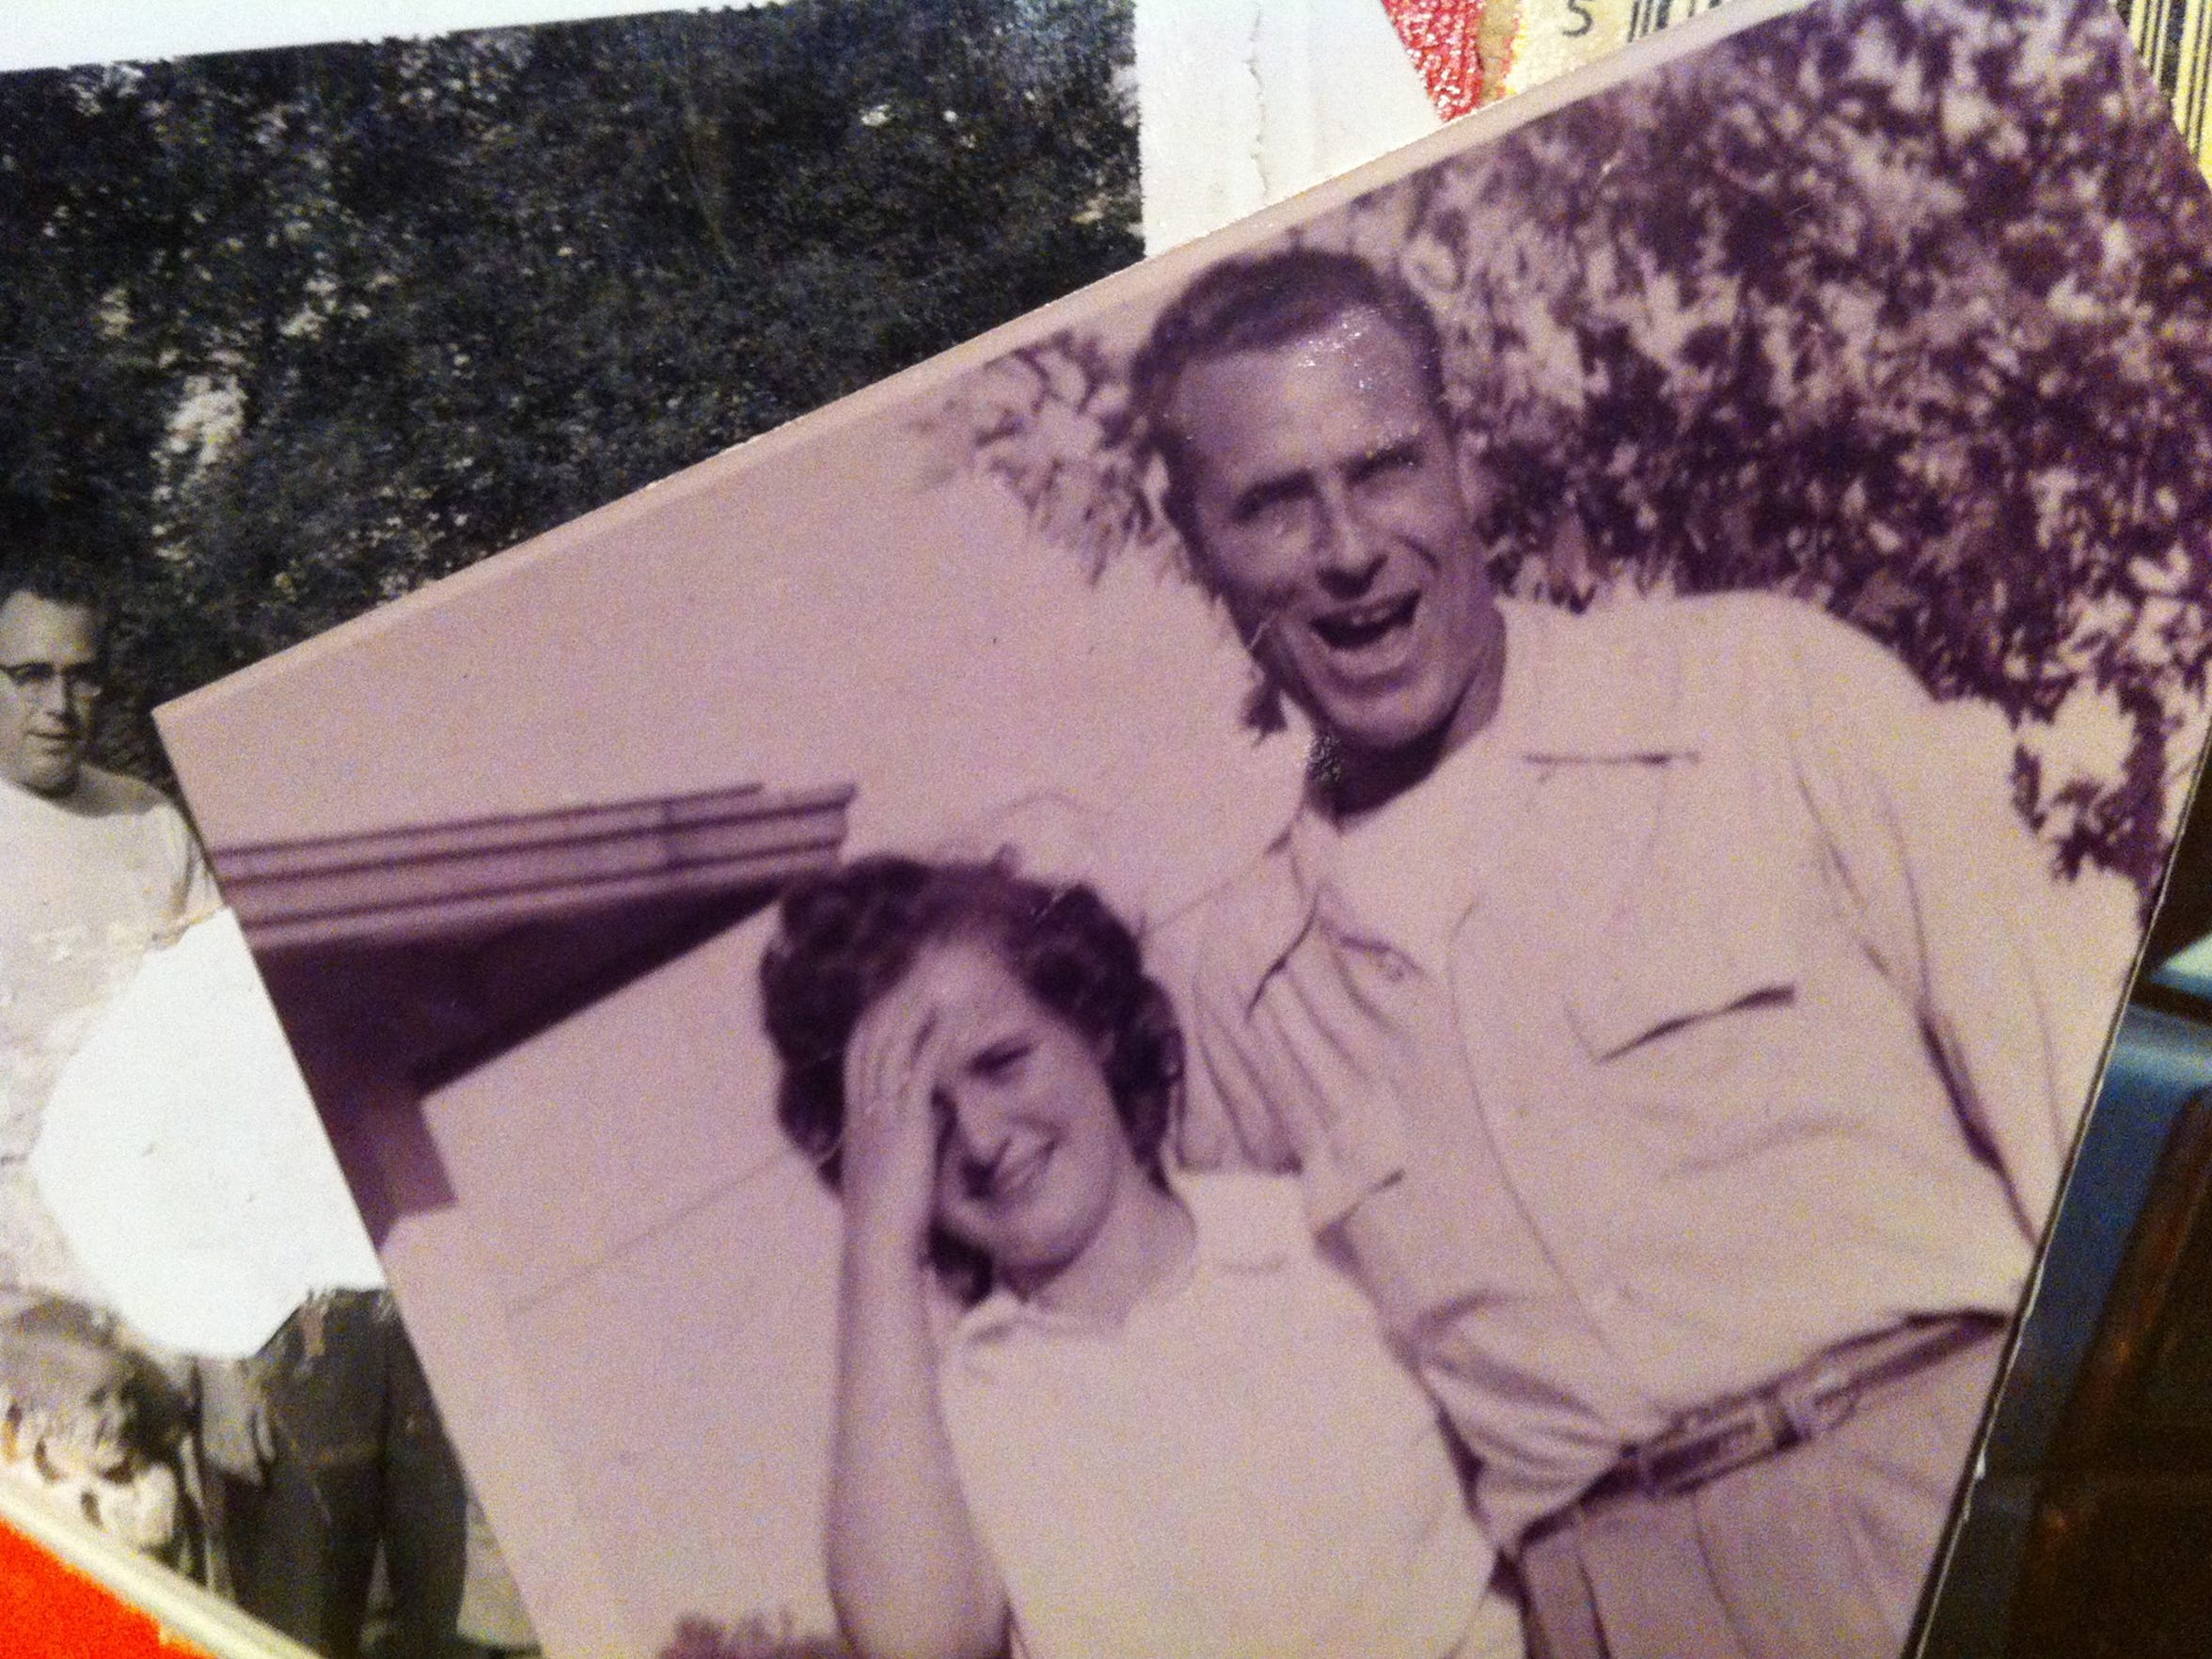 Family photos include a picture of Helen and her late husband, Bob.